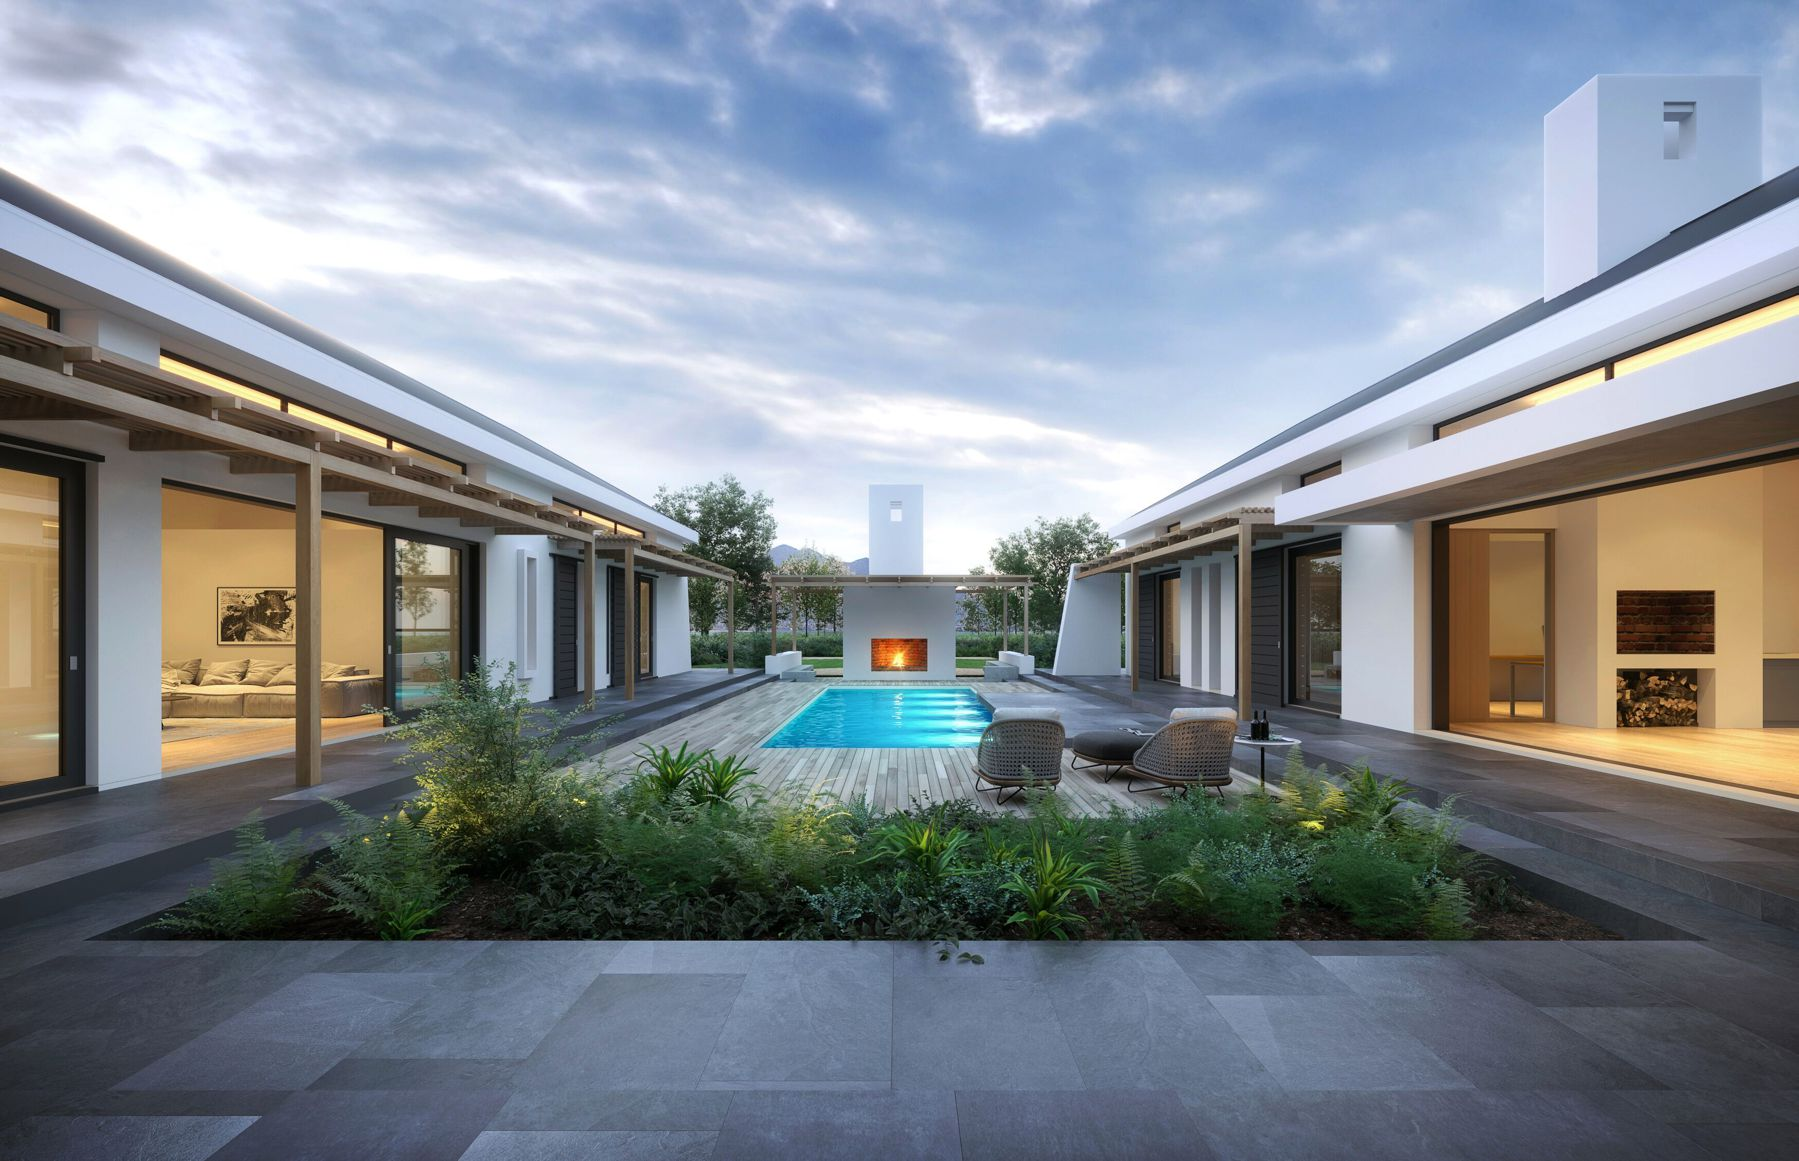 images/acres7/phillips-van-jaarsveldt-architects-acres-plot-73.jpg